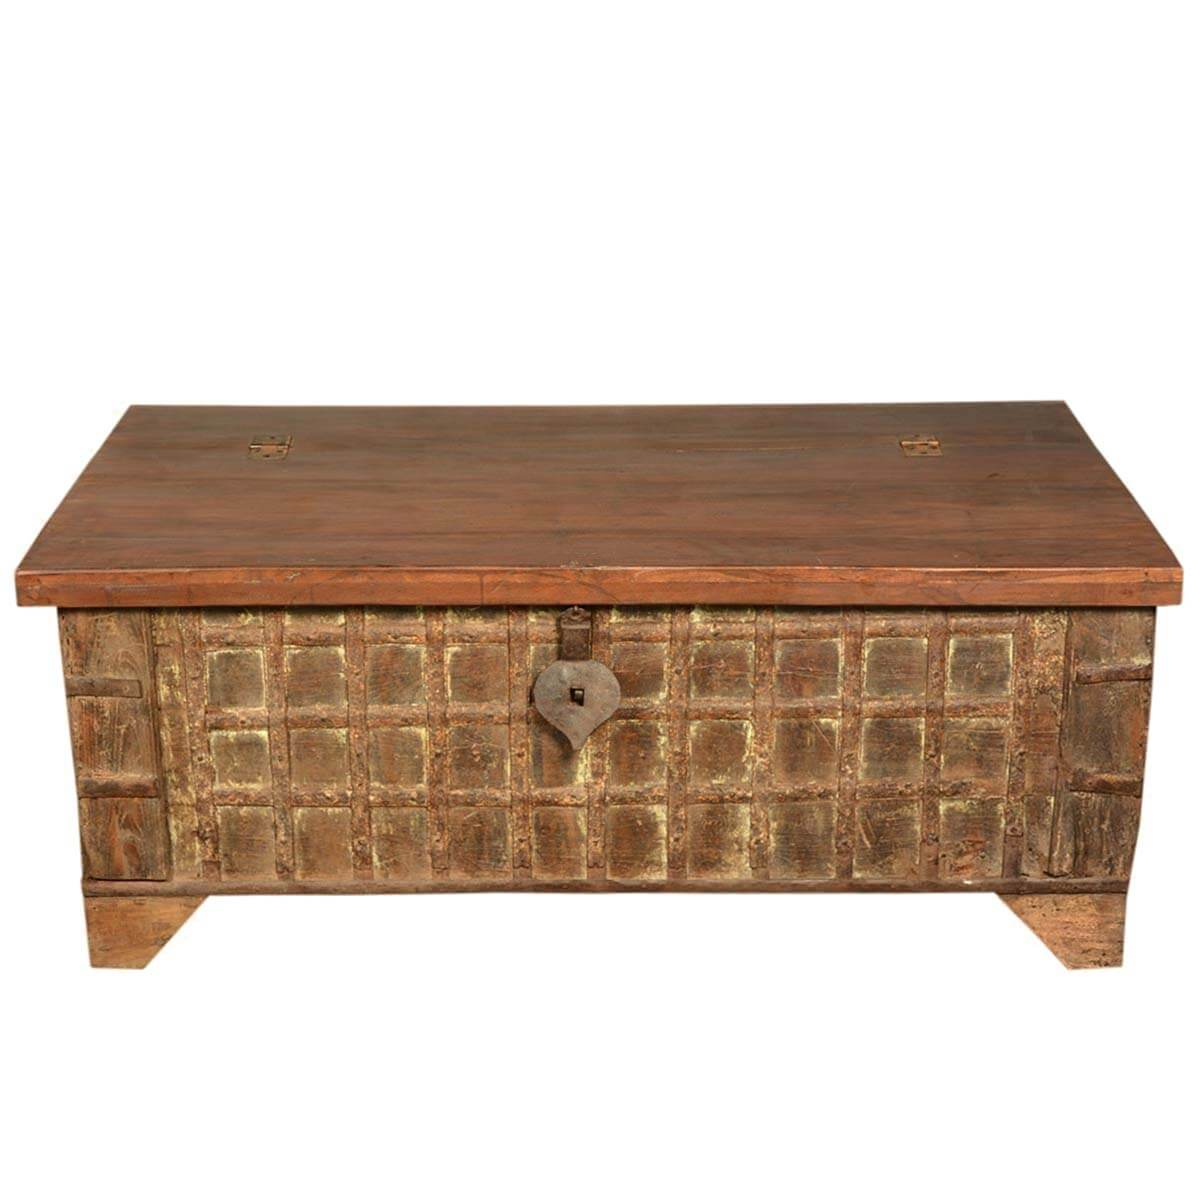 Gothic treasure reclaimed wood coffee table storage box chest Coffee table chest with storage